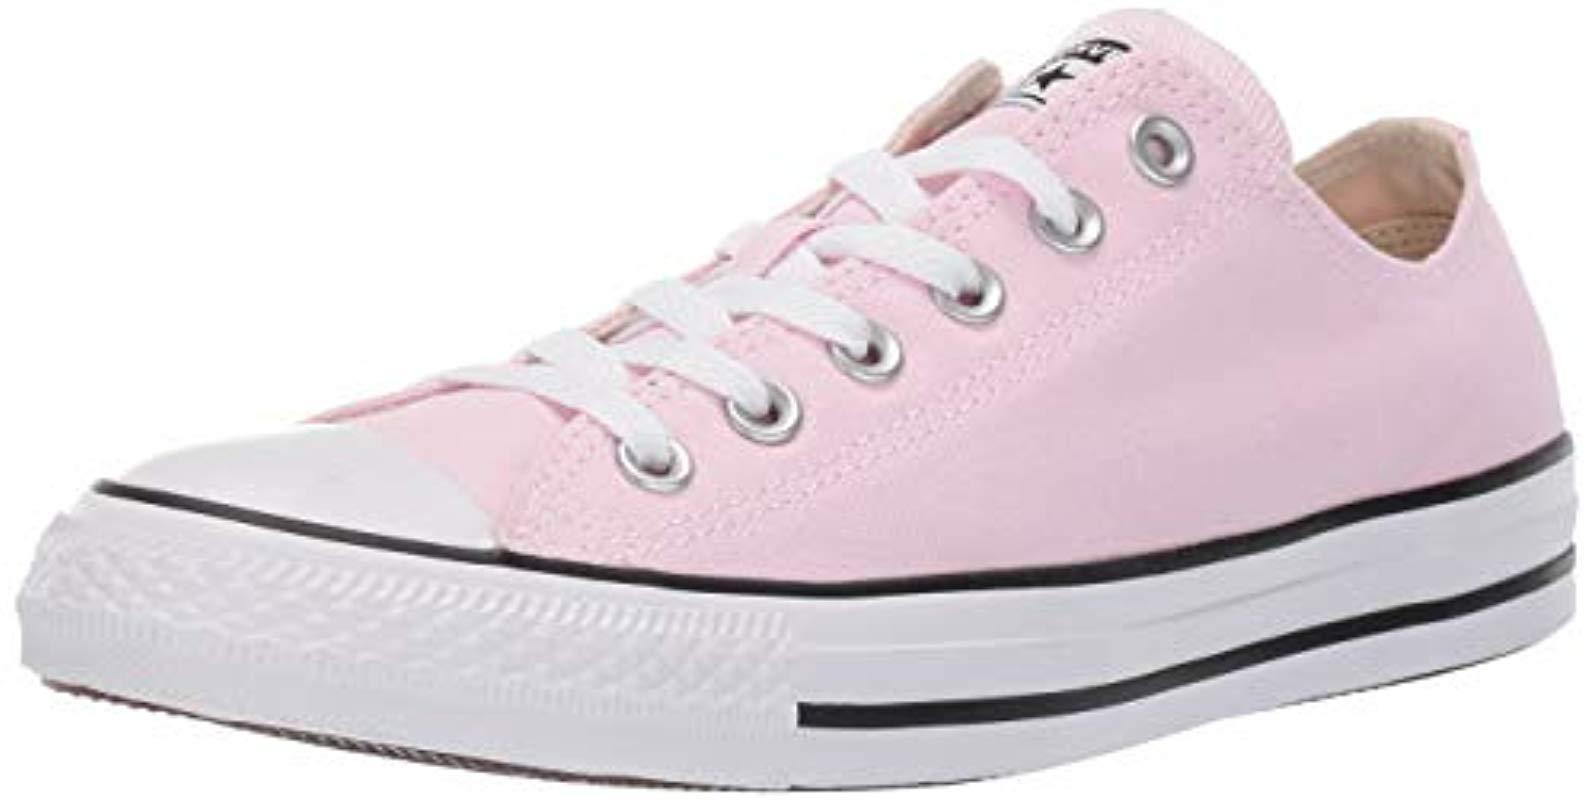 81395f0014c Converse. Pink Unisex Chuck Taylor All Star Seasonal 2019 Low Top Sneaker